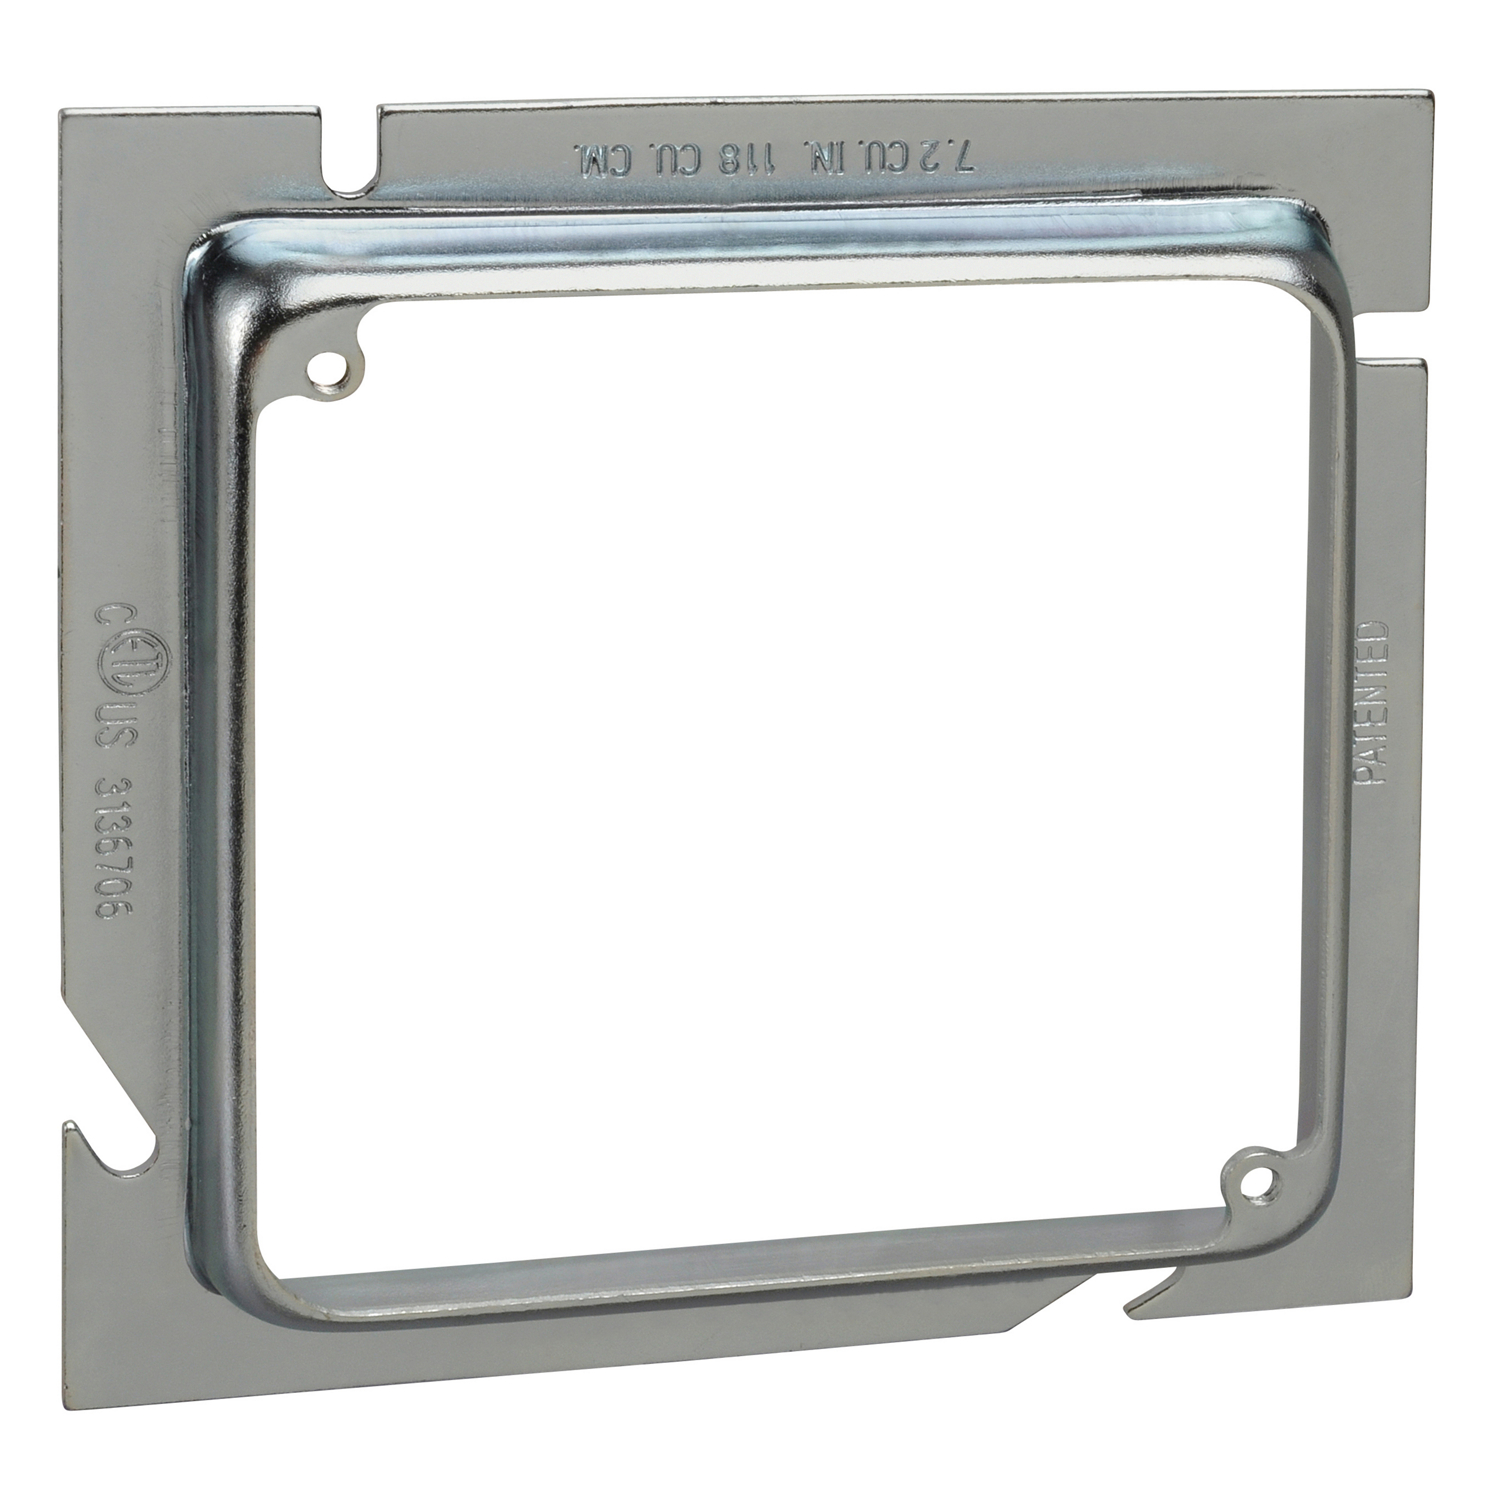 5-SQ X 4-SQ EXT RING 1/2-IN